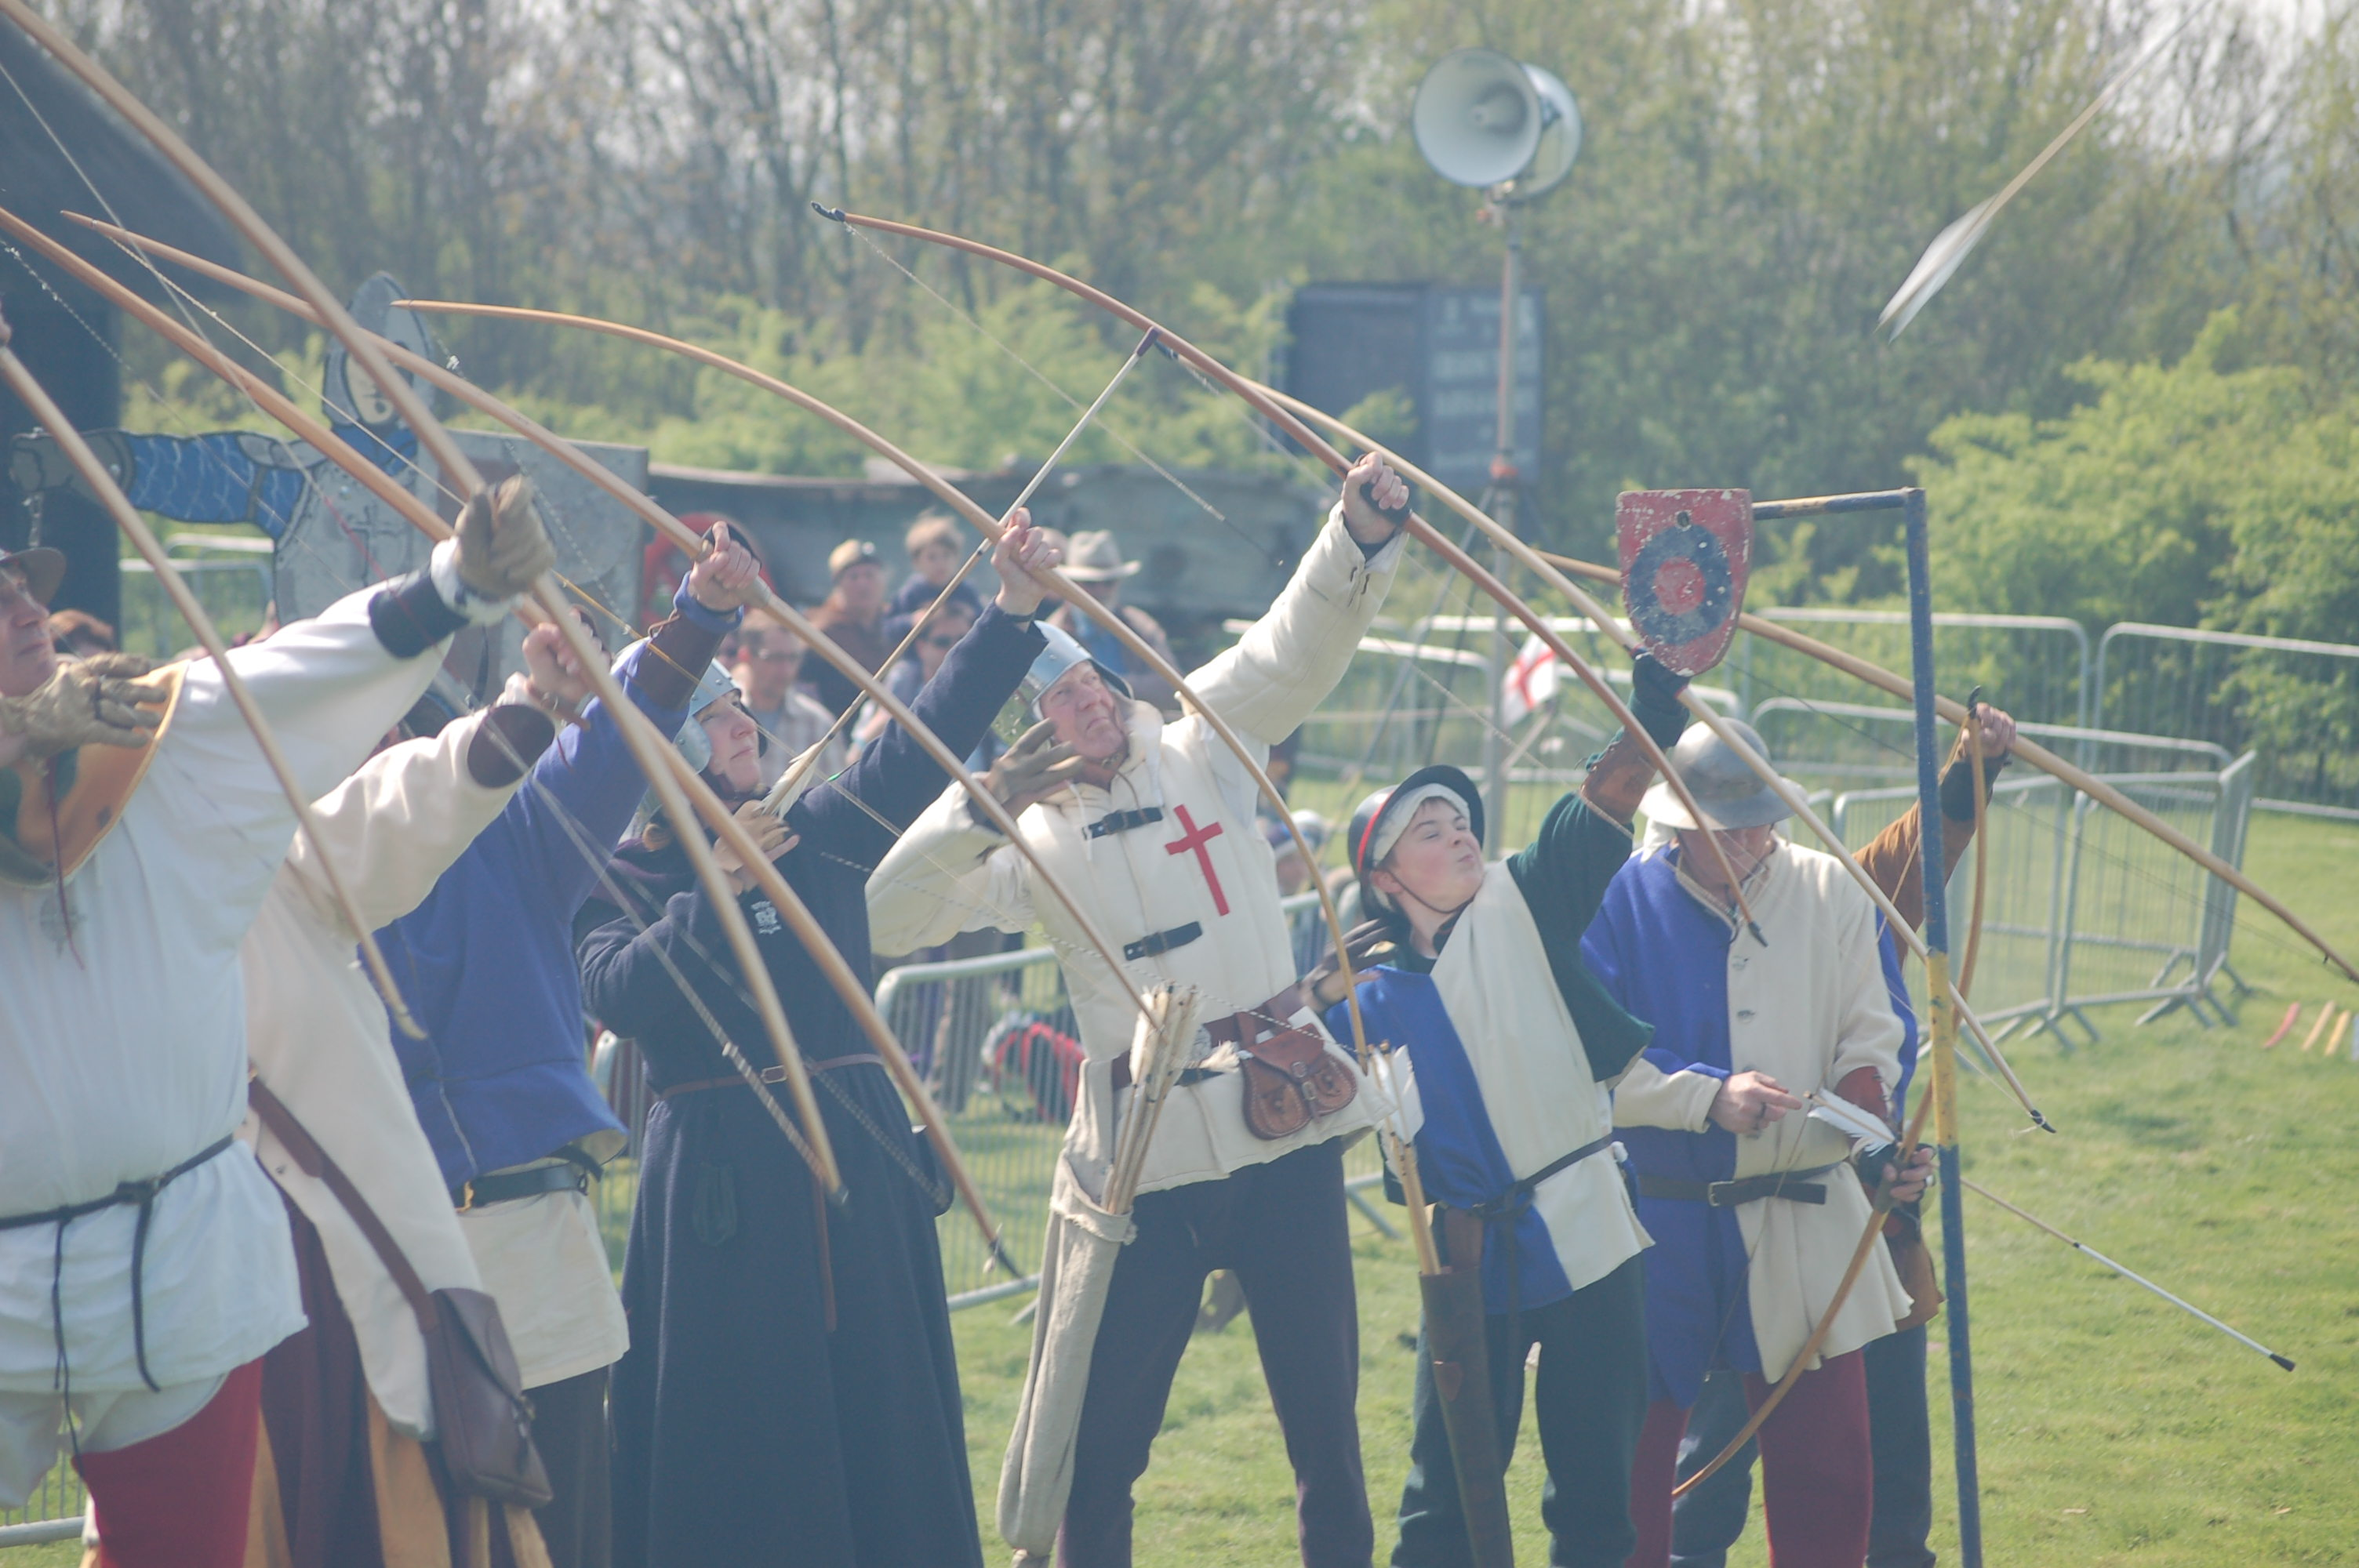 Lancastrian archers in the re-enactment by the Medieval Siege Society